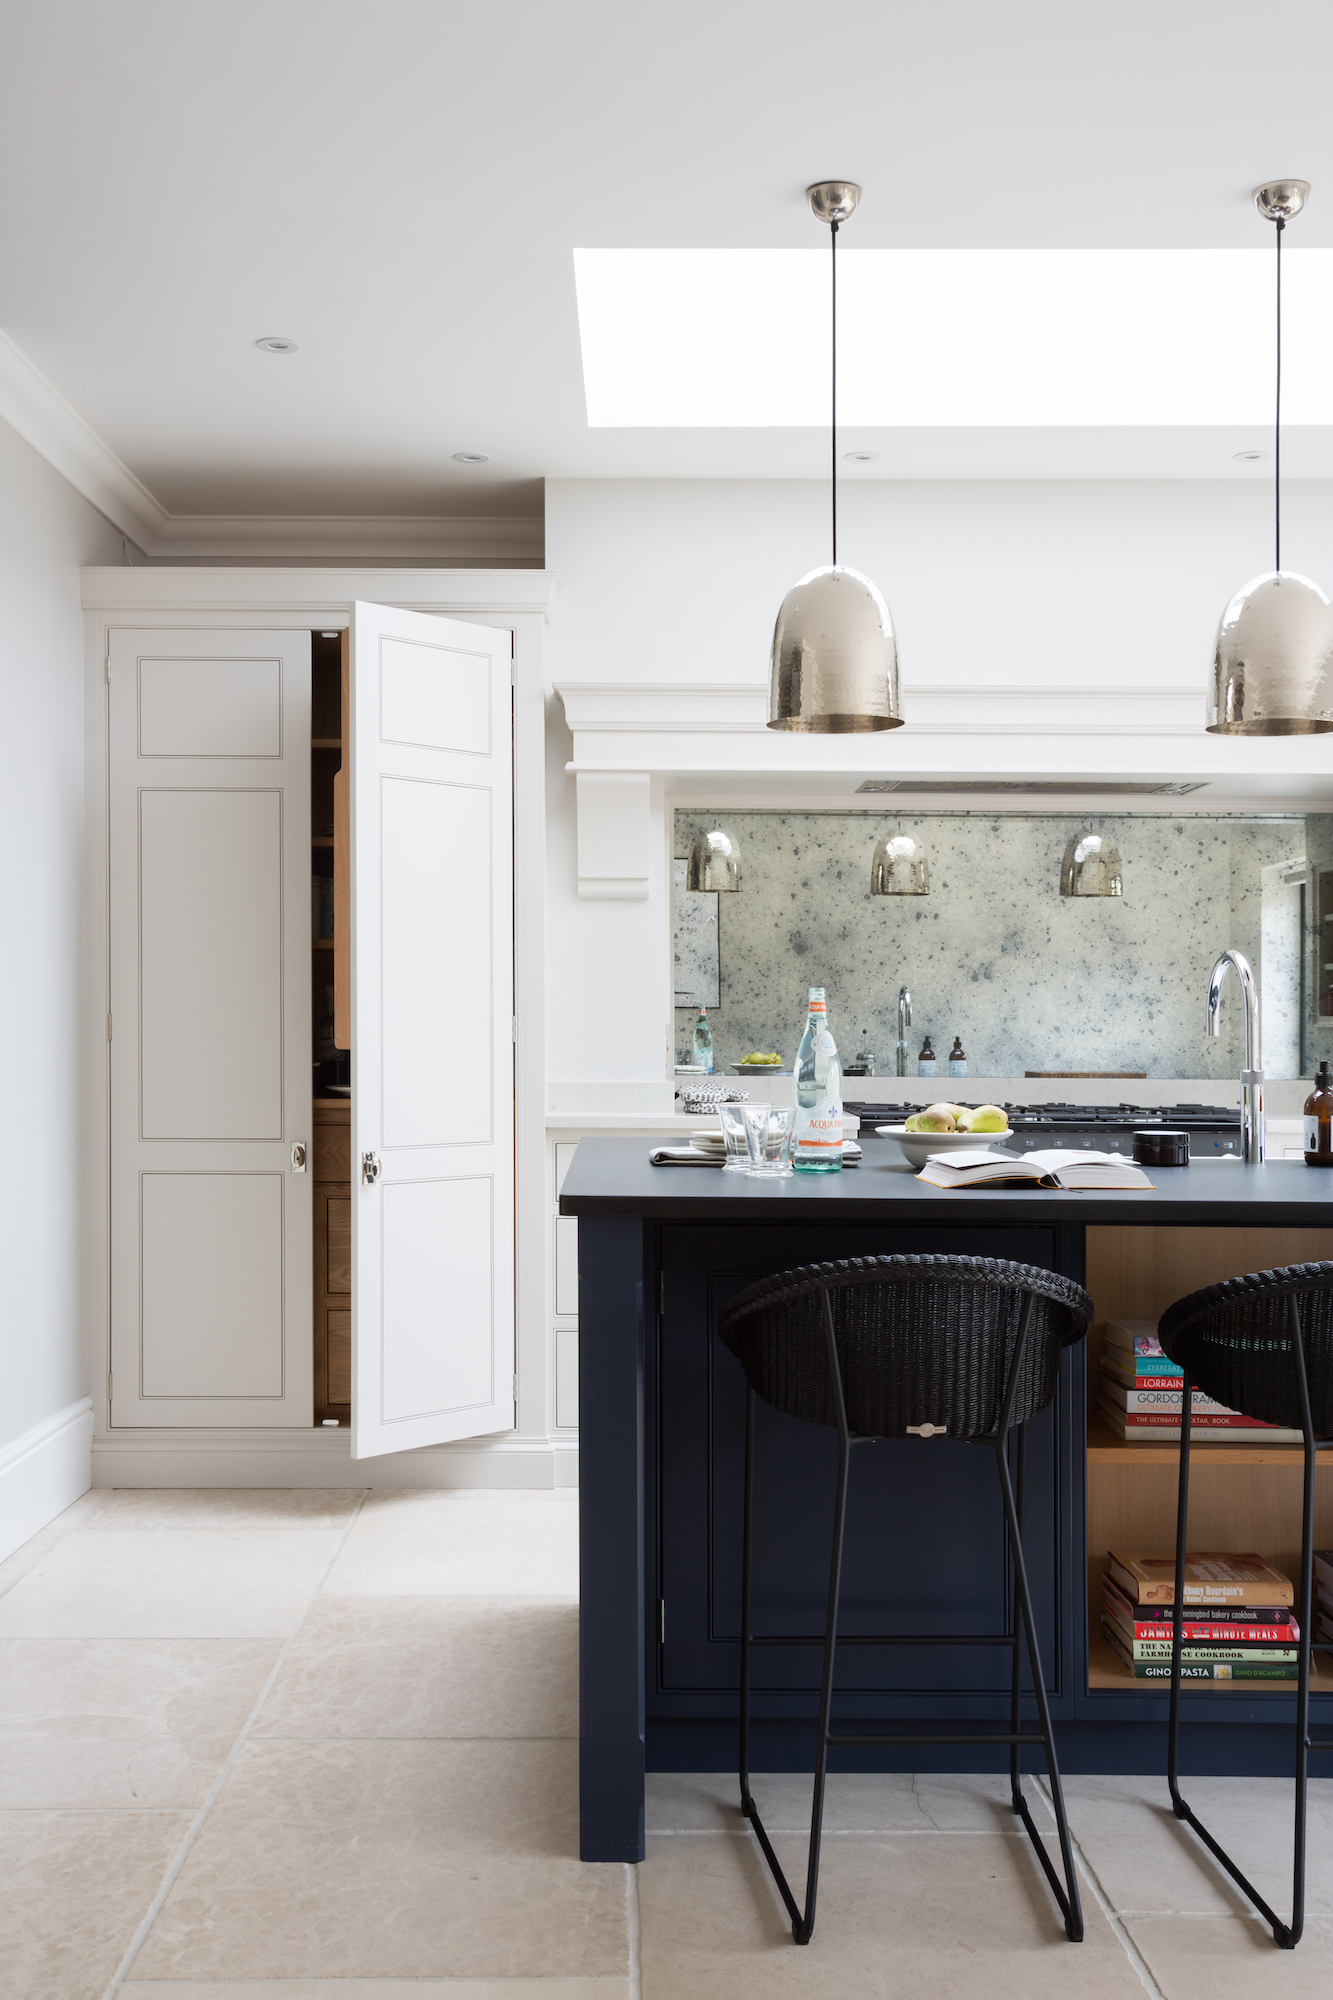 Contemporary Spenlow Kitchen, Essex - Humphrey Munson